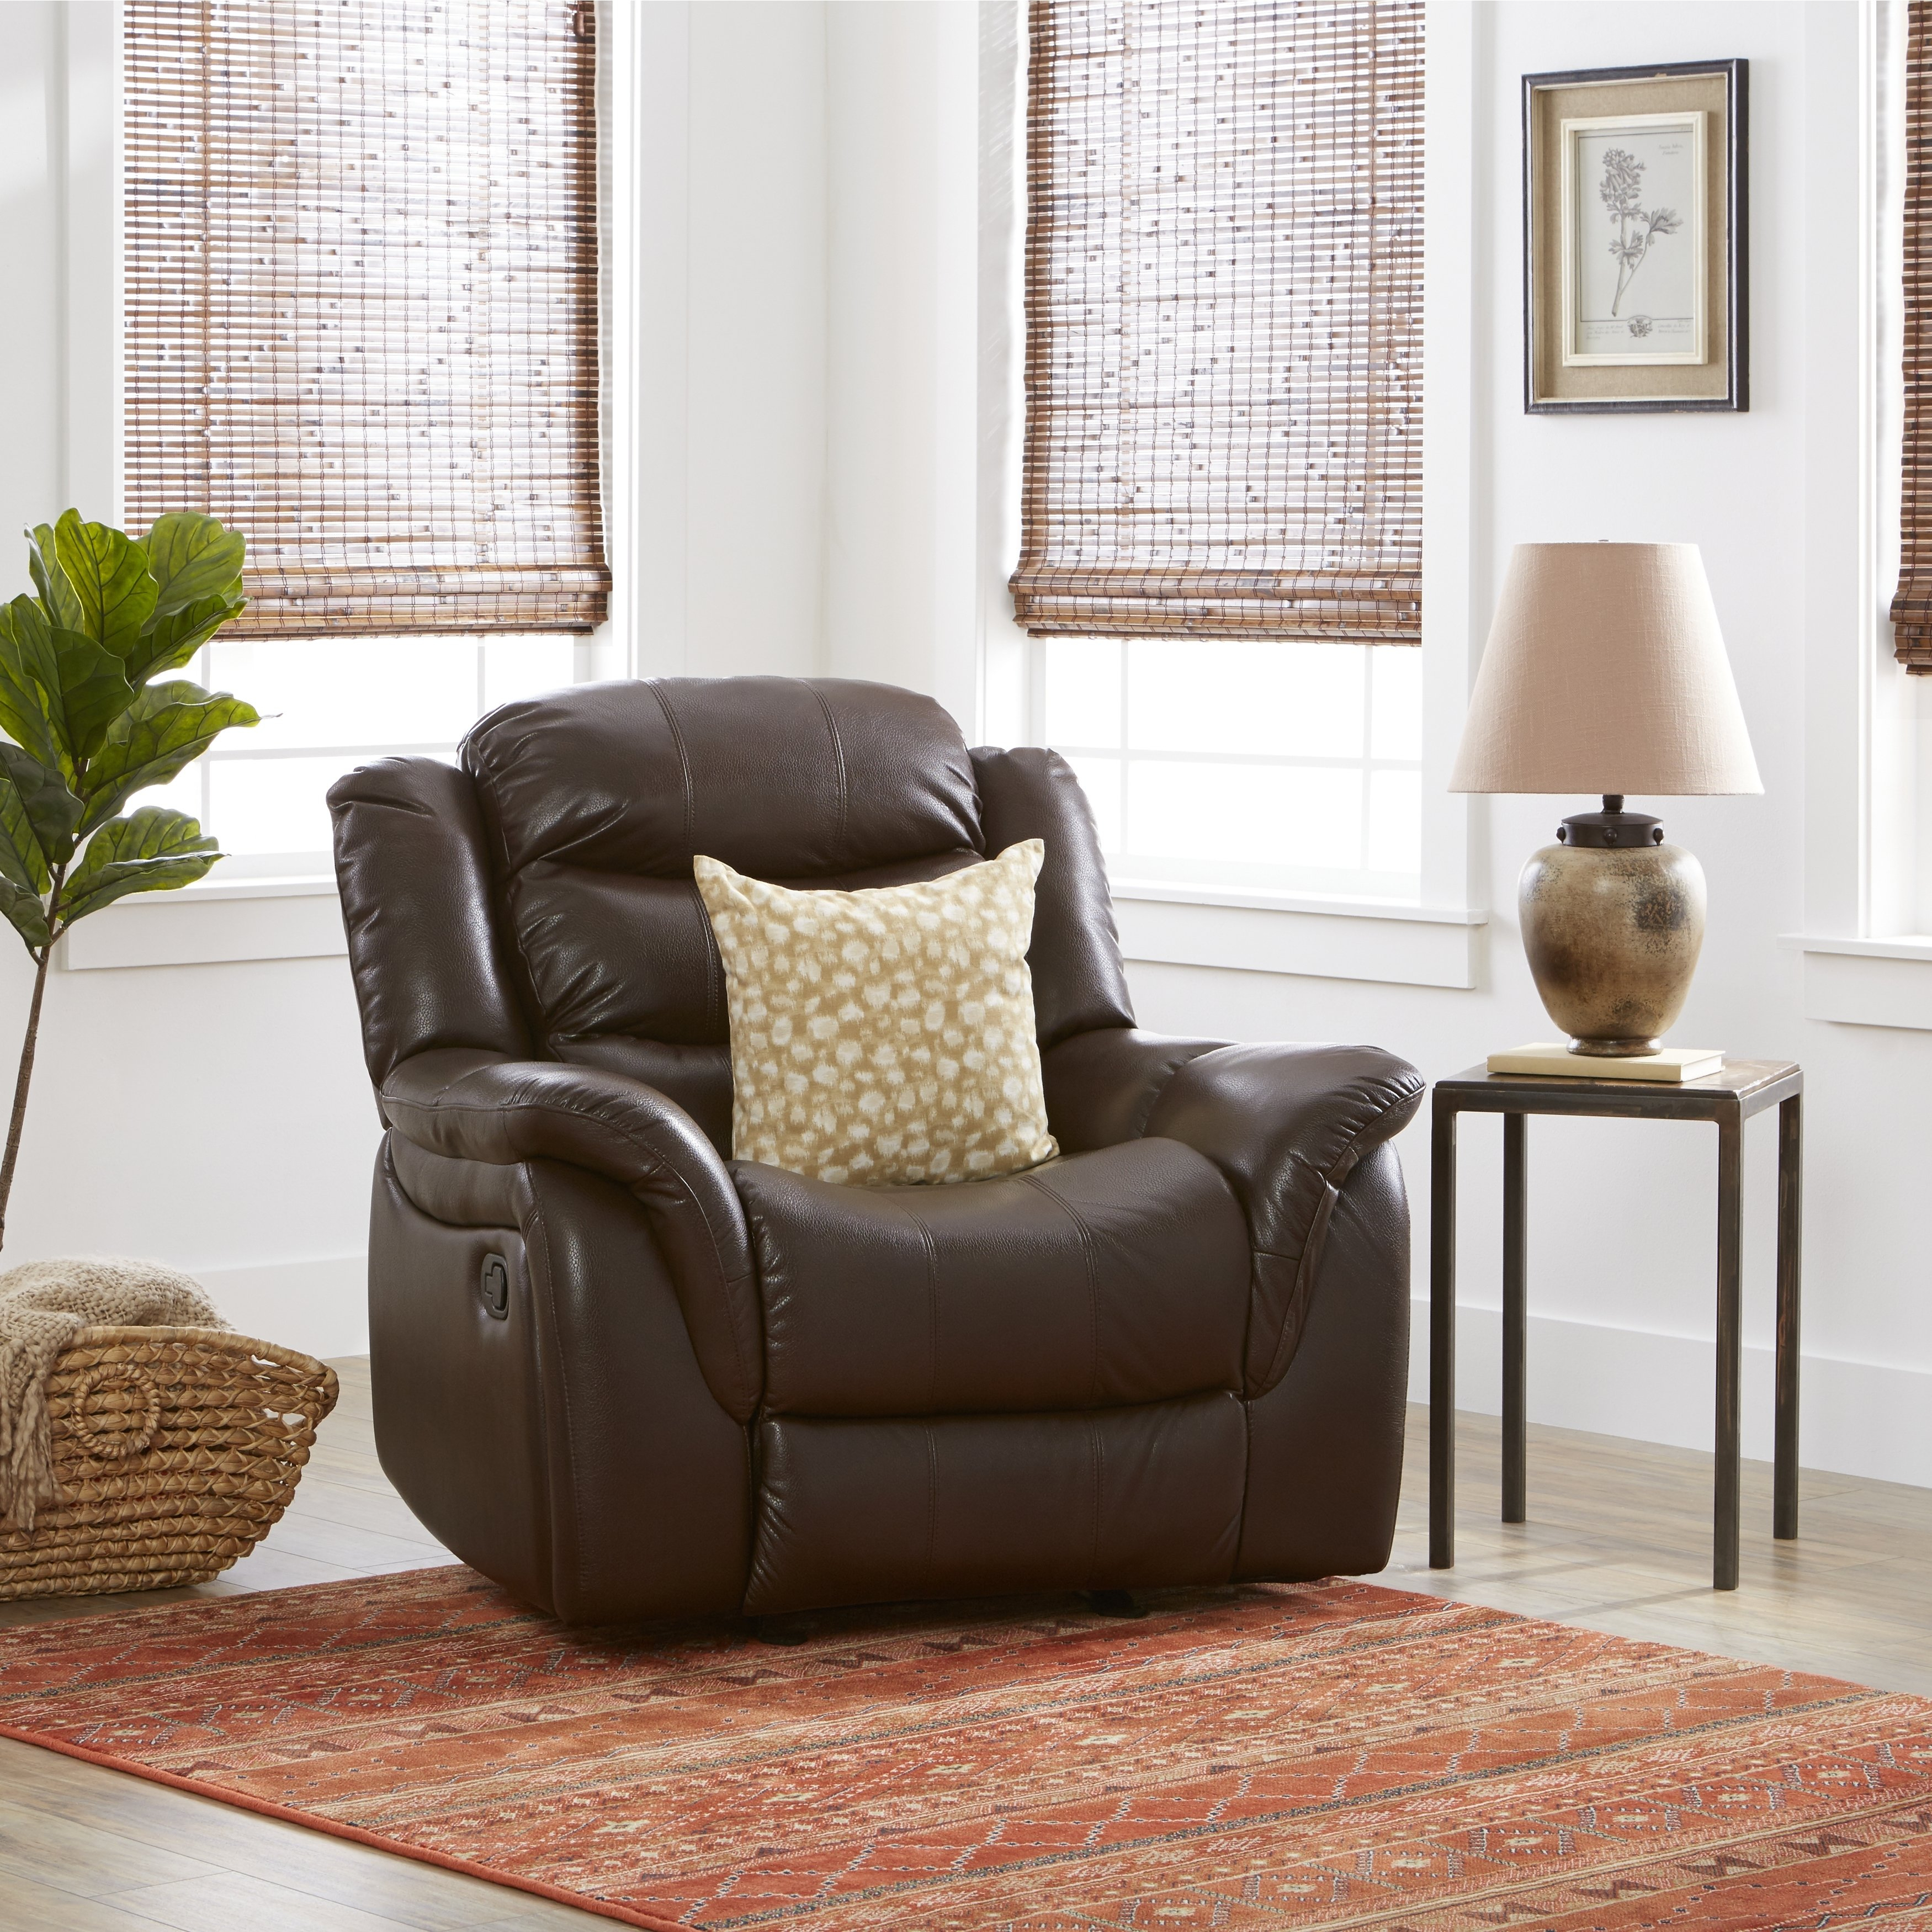 Buy Brown Christopher Knight Home Living Room Chairs Online At Within Dale Iii Polyurethane Swivel Glider Recliners (Image 4 of 20)